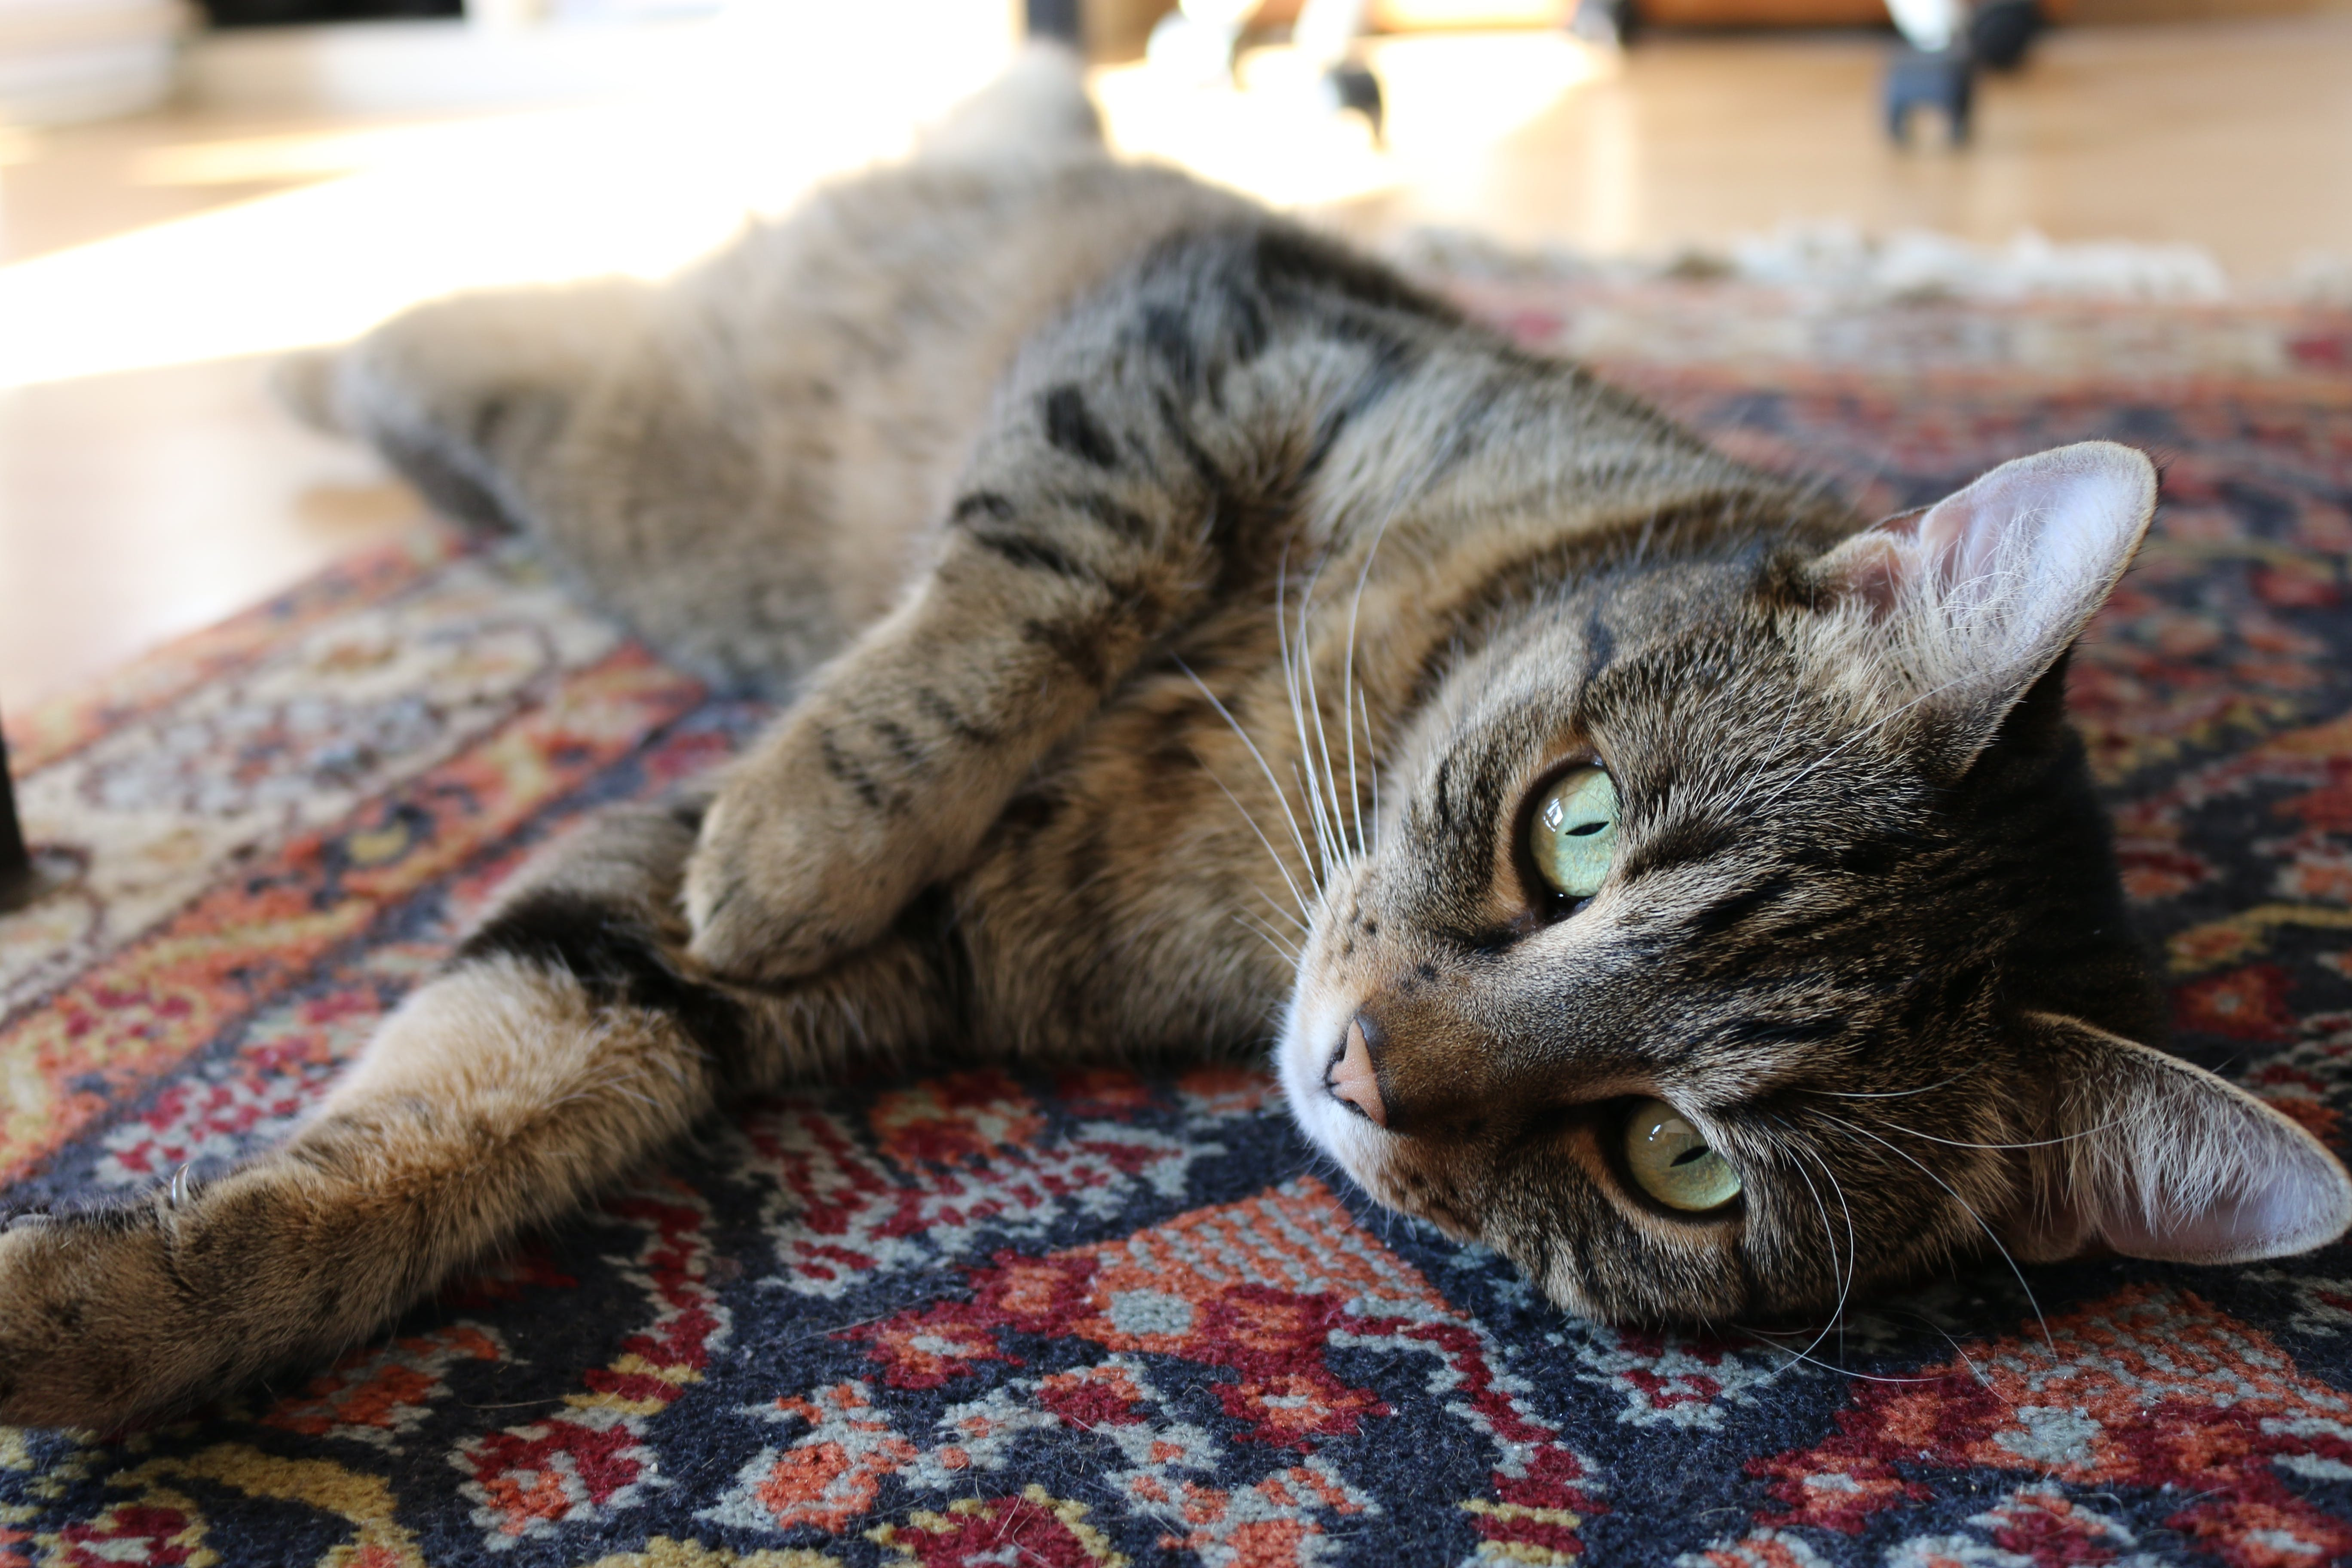 Brown Tabby Cat on Red and Blue Floral Carpet